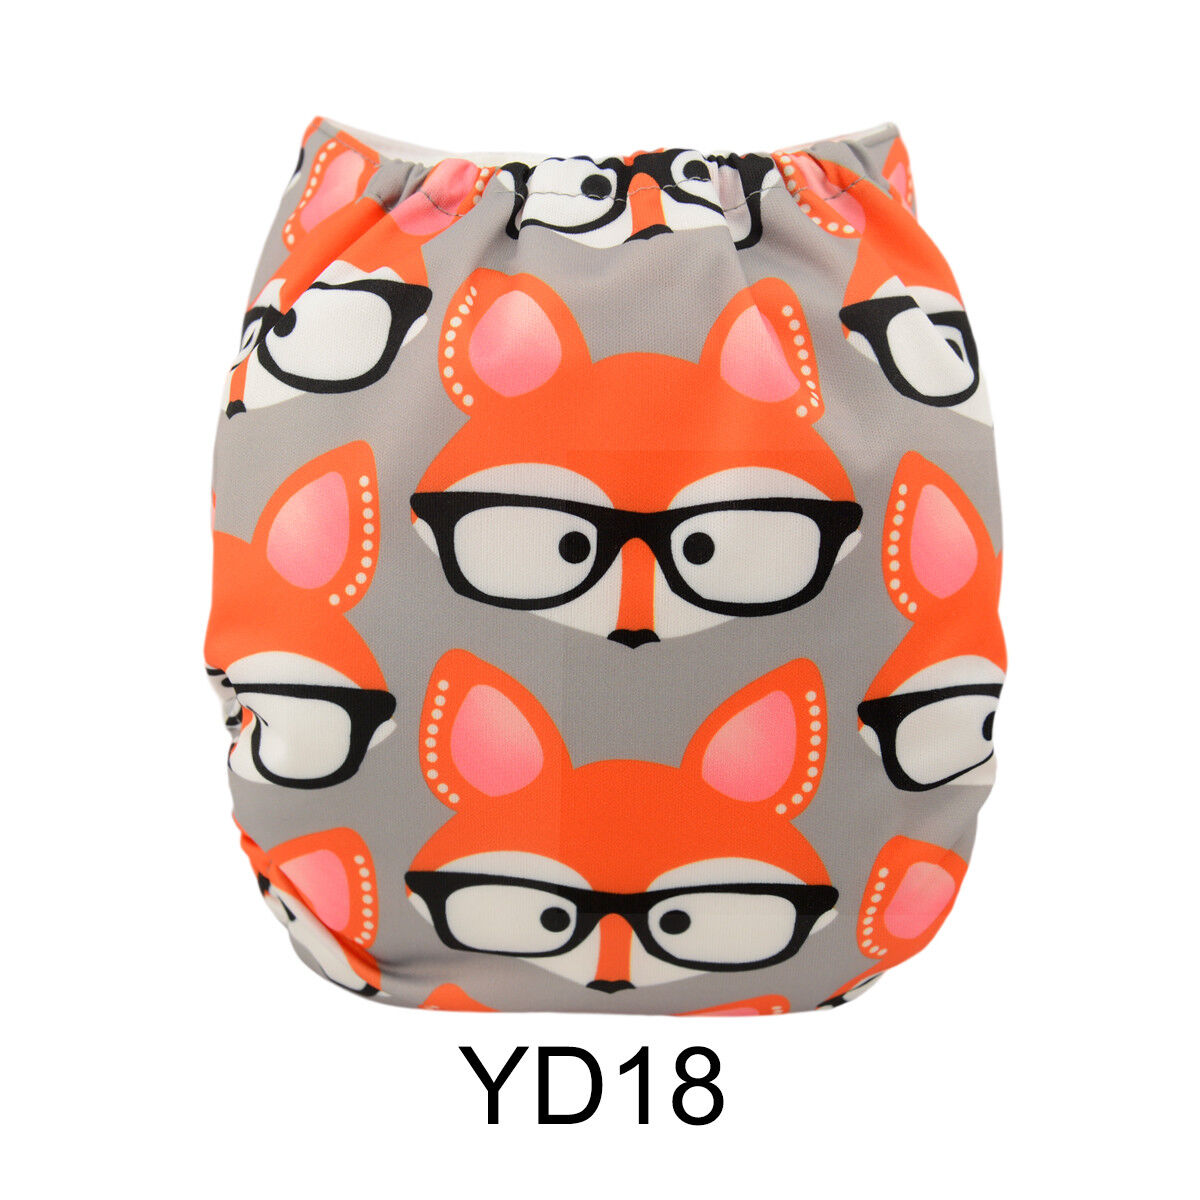 ALVABABY Reusable Baby Cloth Diapers OneSize Washable Pocket Nappies With Insert YD18